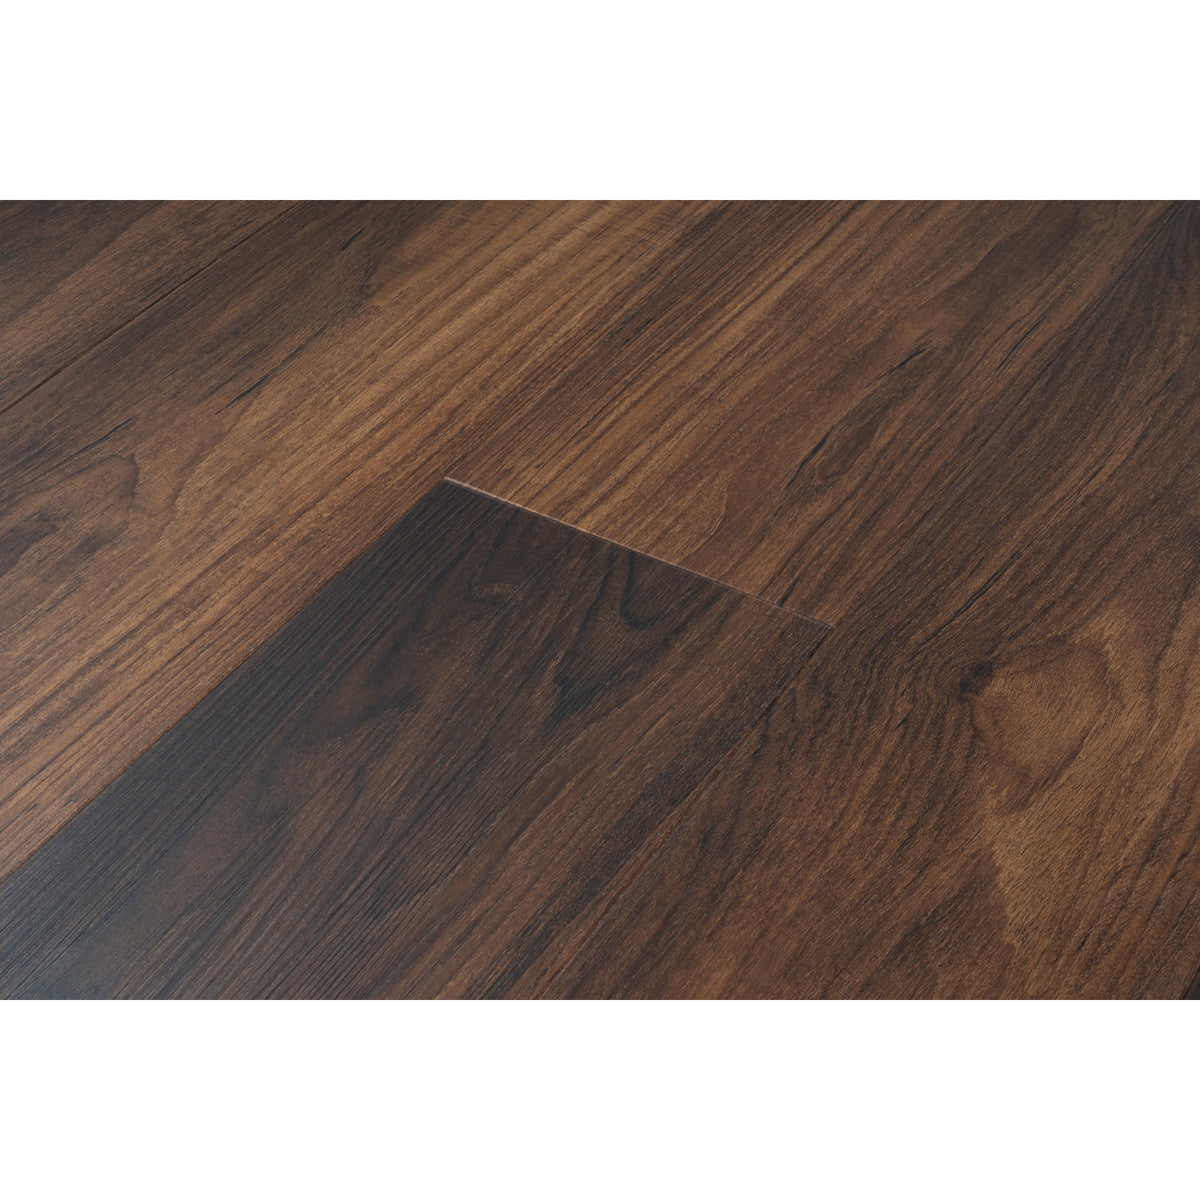 Provenza Floors - Uptown Chic Luxury Vinyl Plank - Big Easy